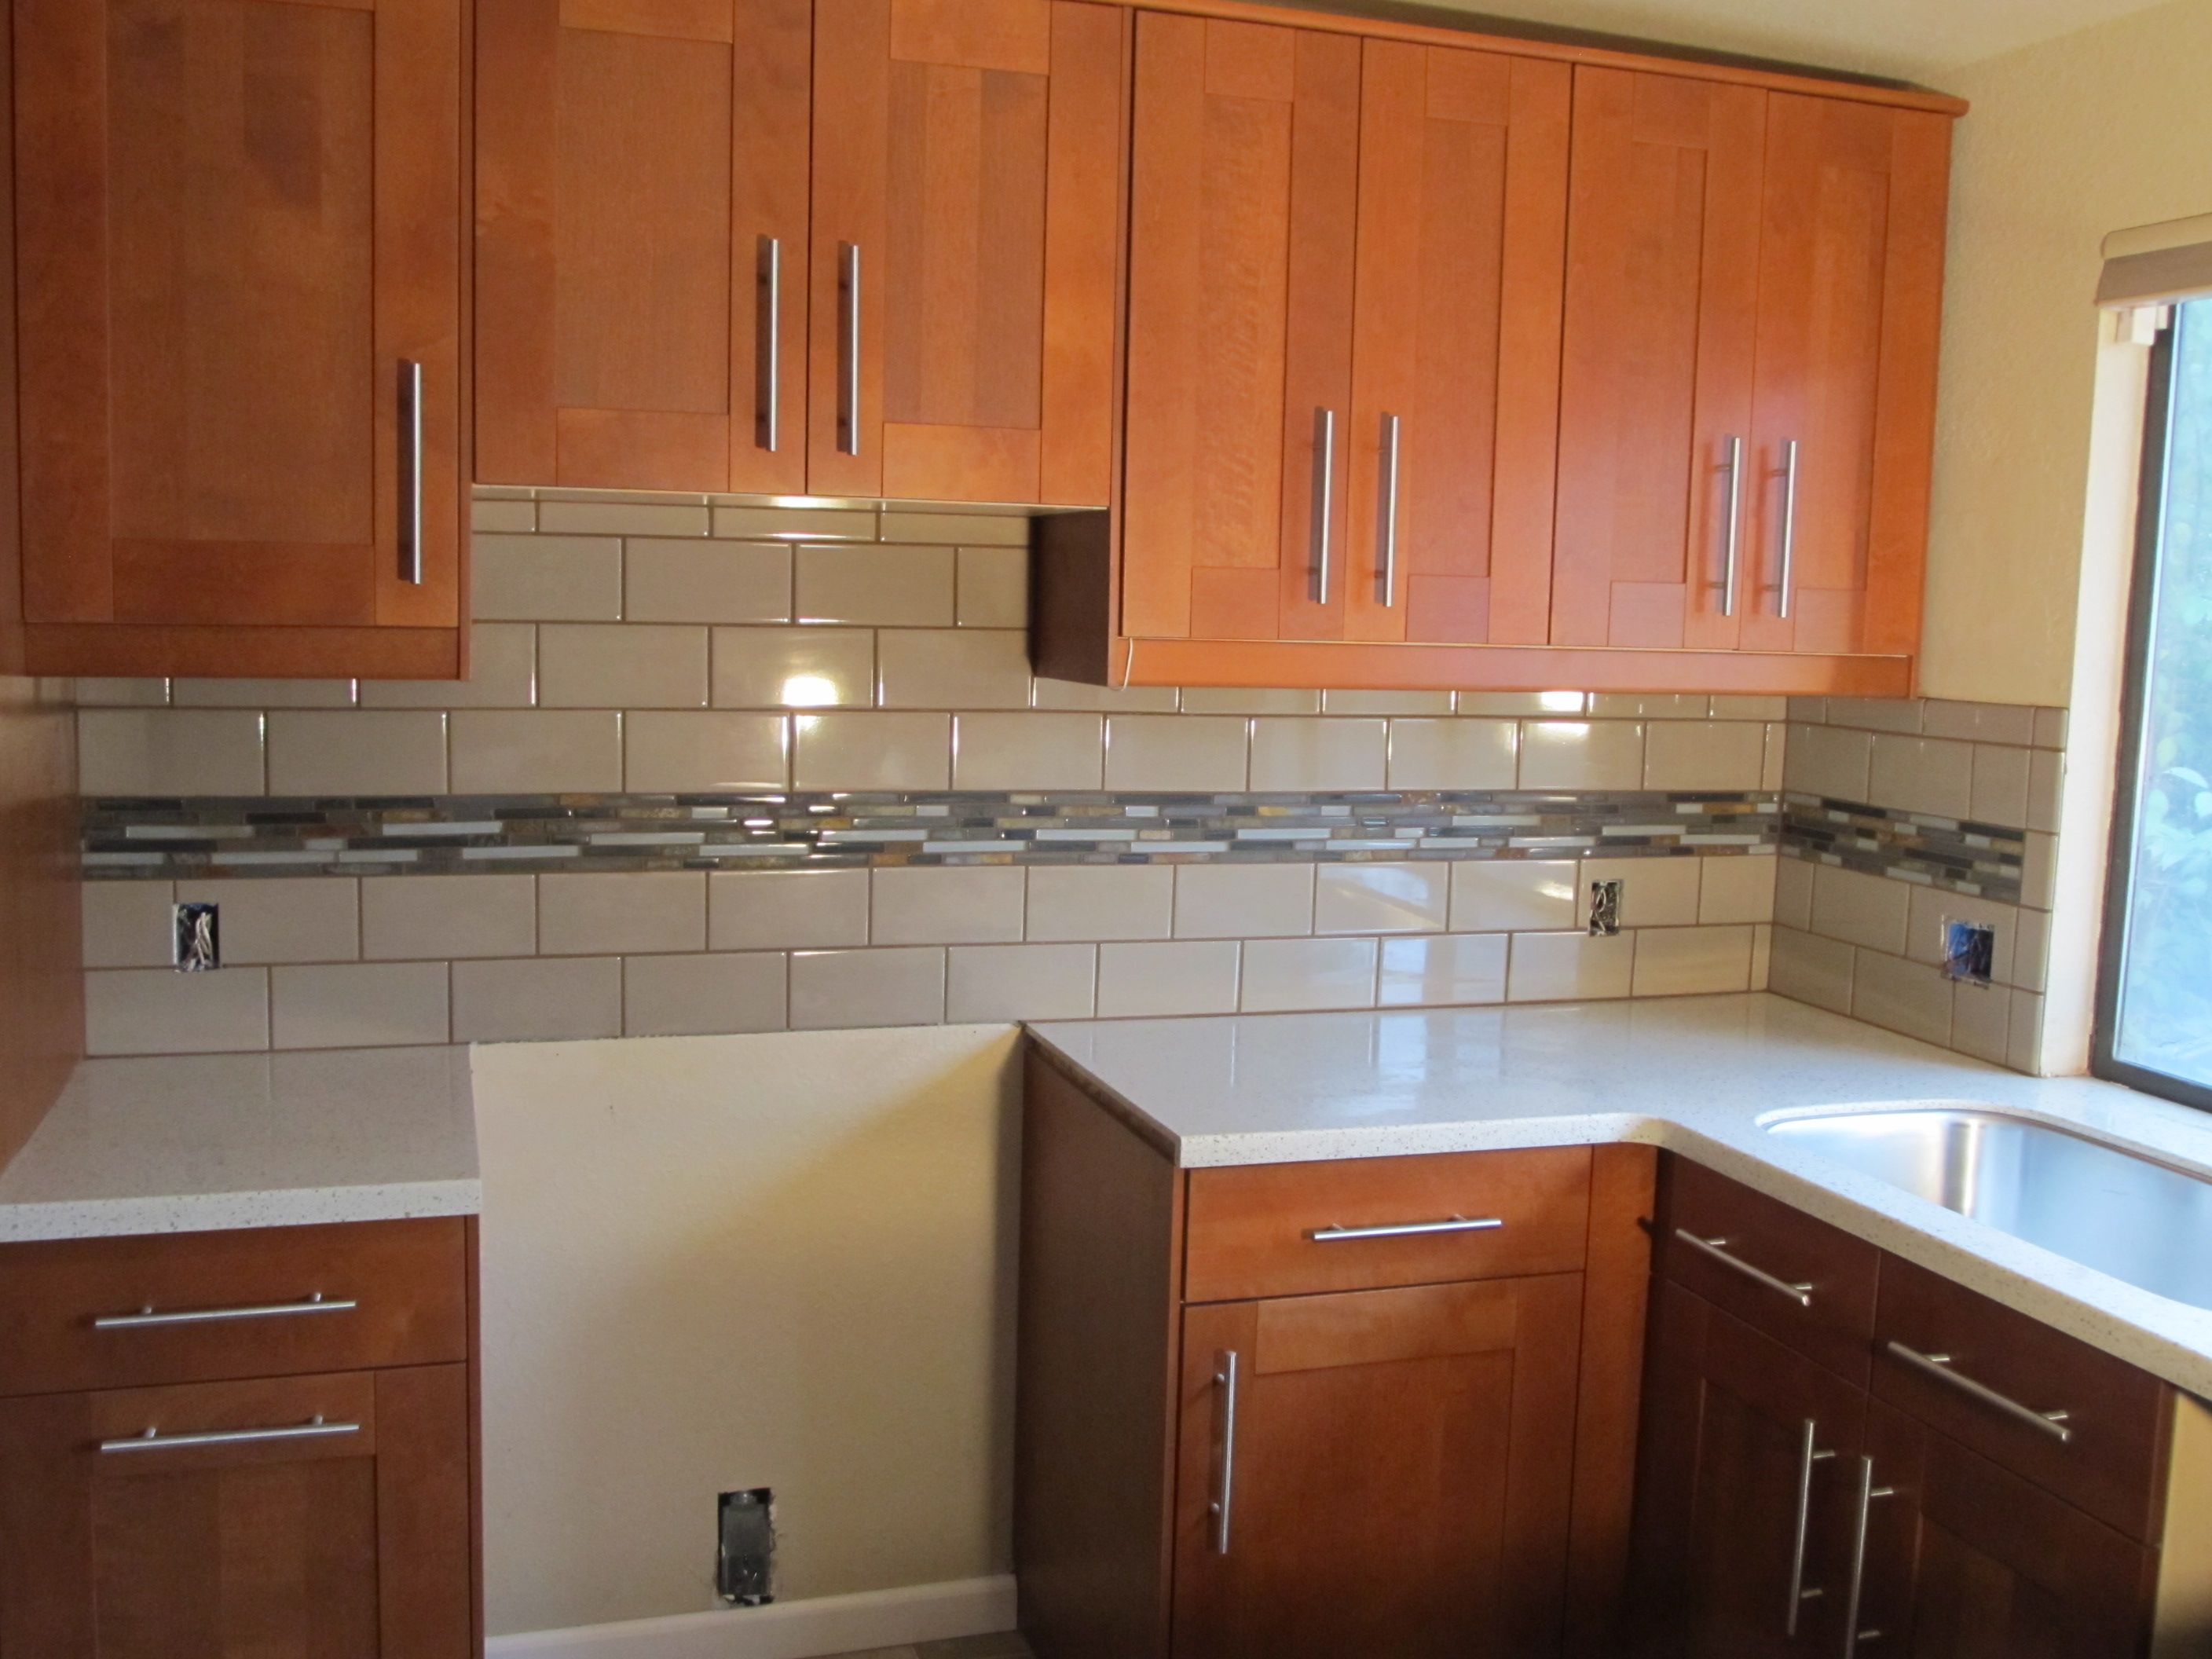 White Counters And Tile With Mosaic Tile Strip Like Baths Not A